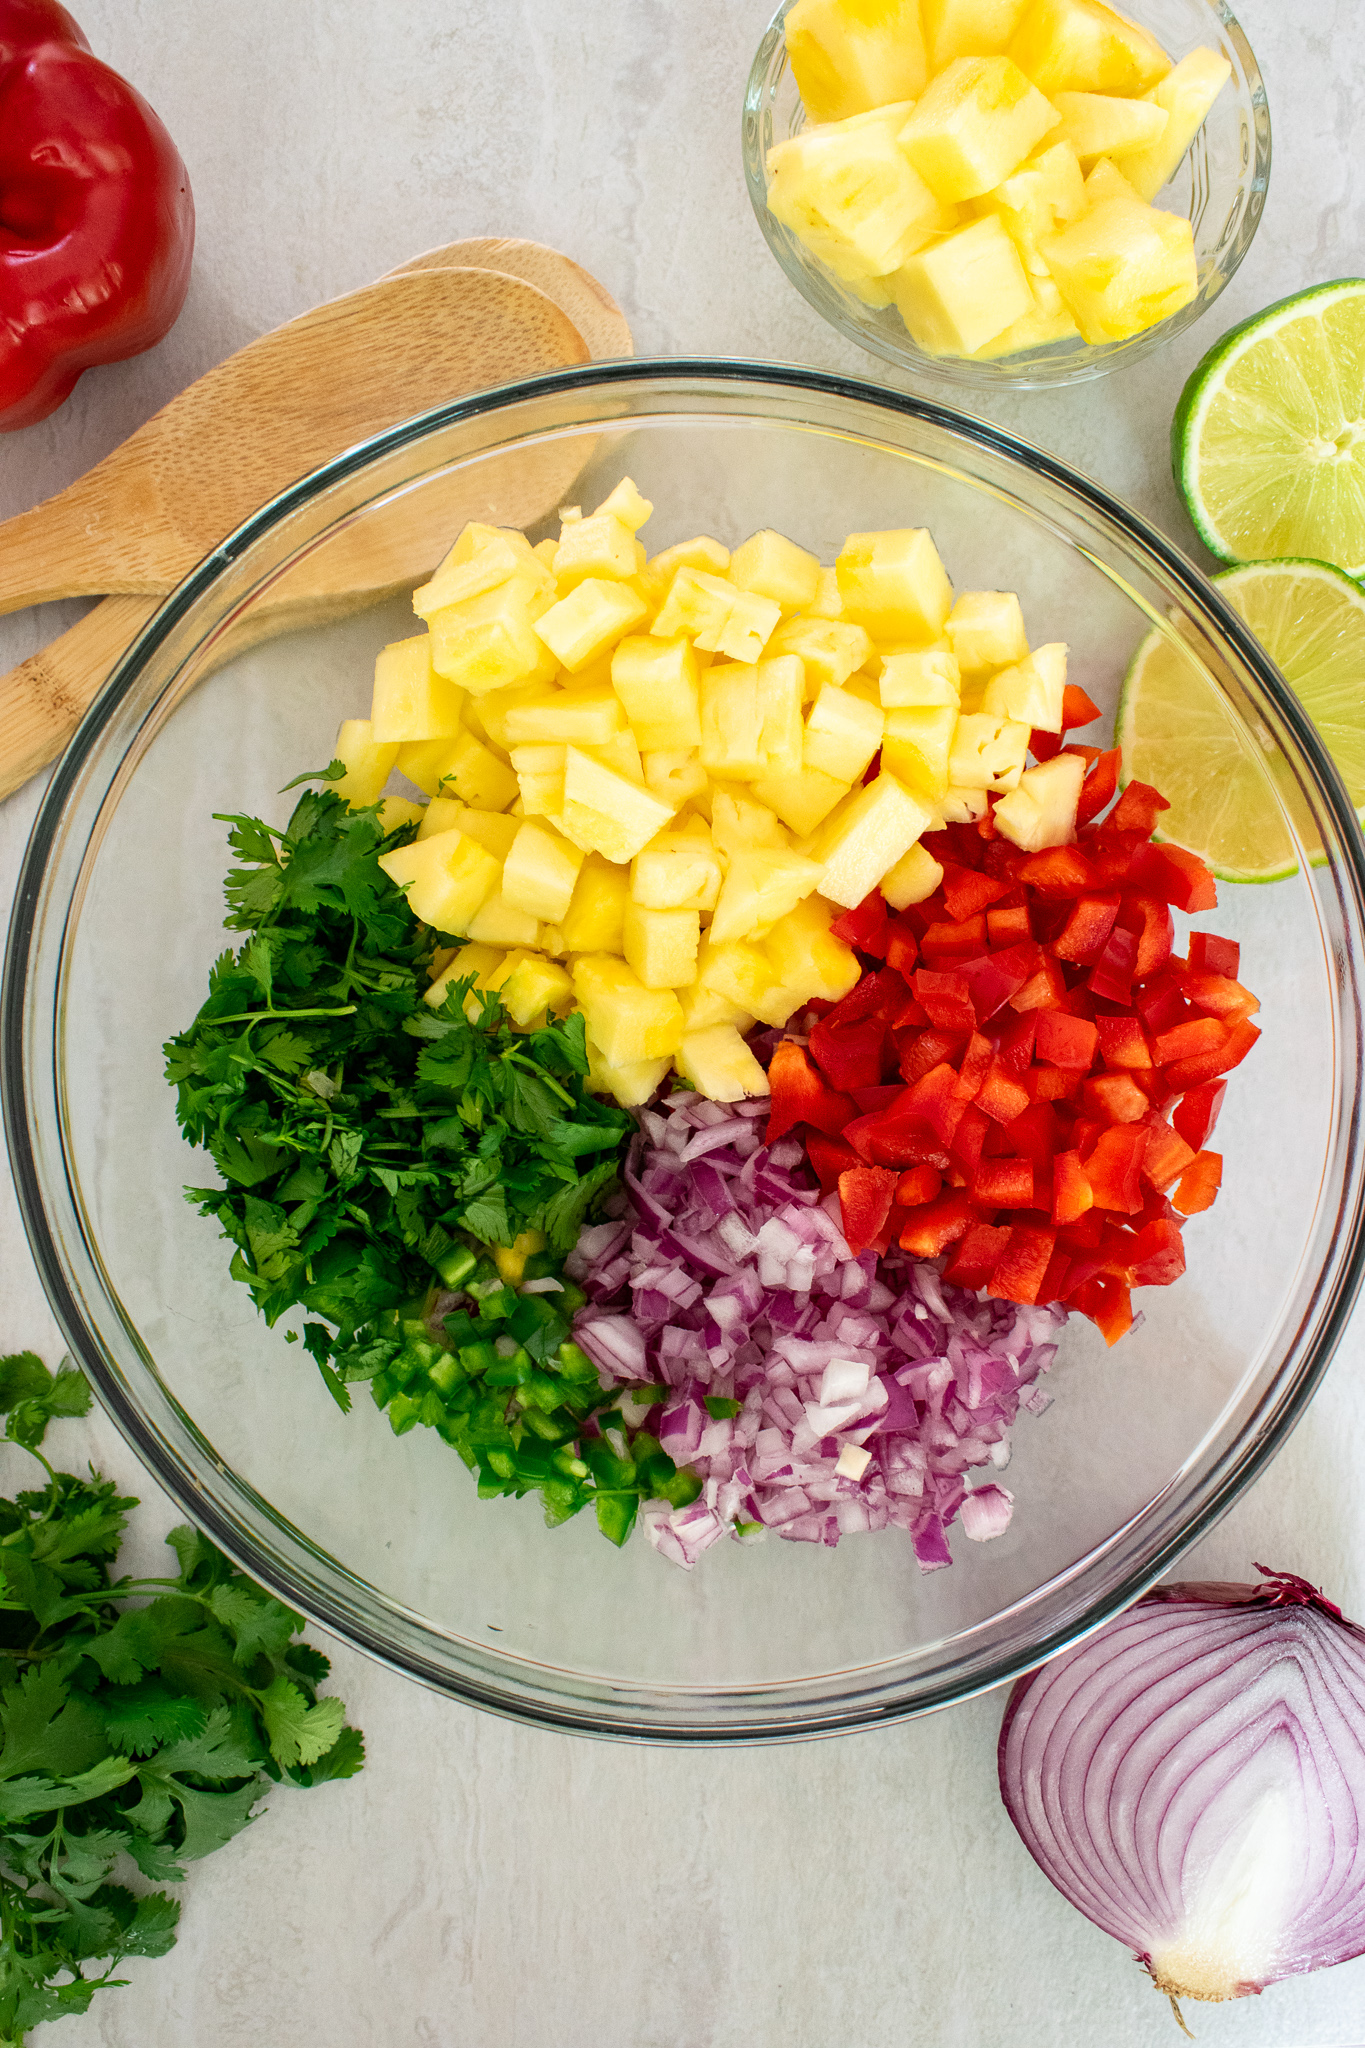 Ingredients for pineapple salsa laid out on a kitchen counter.